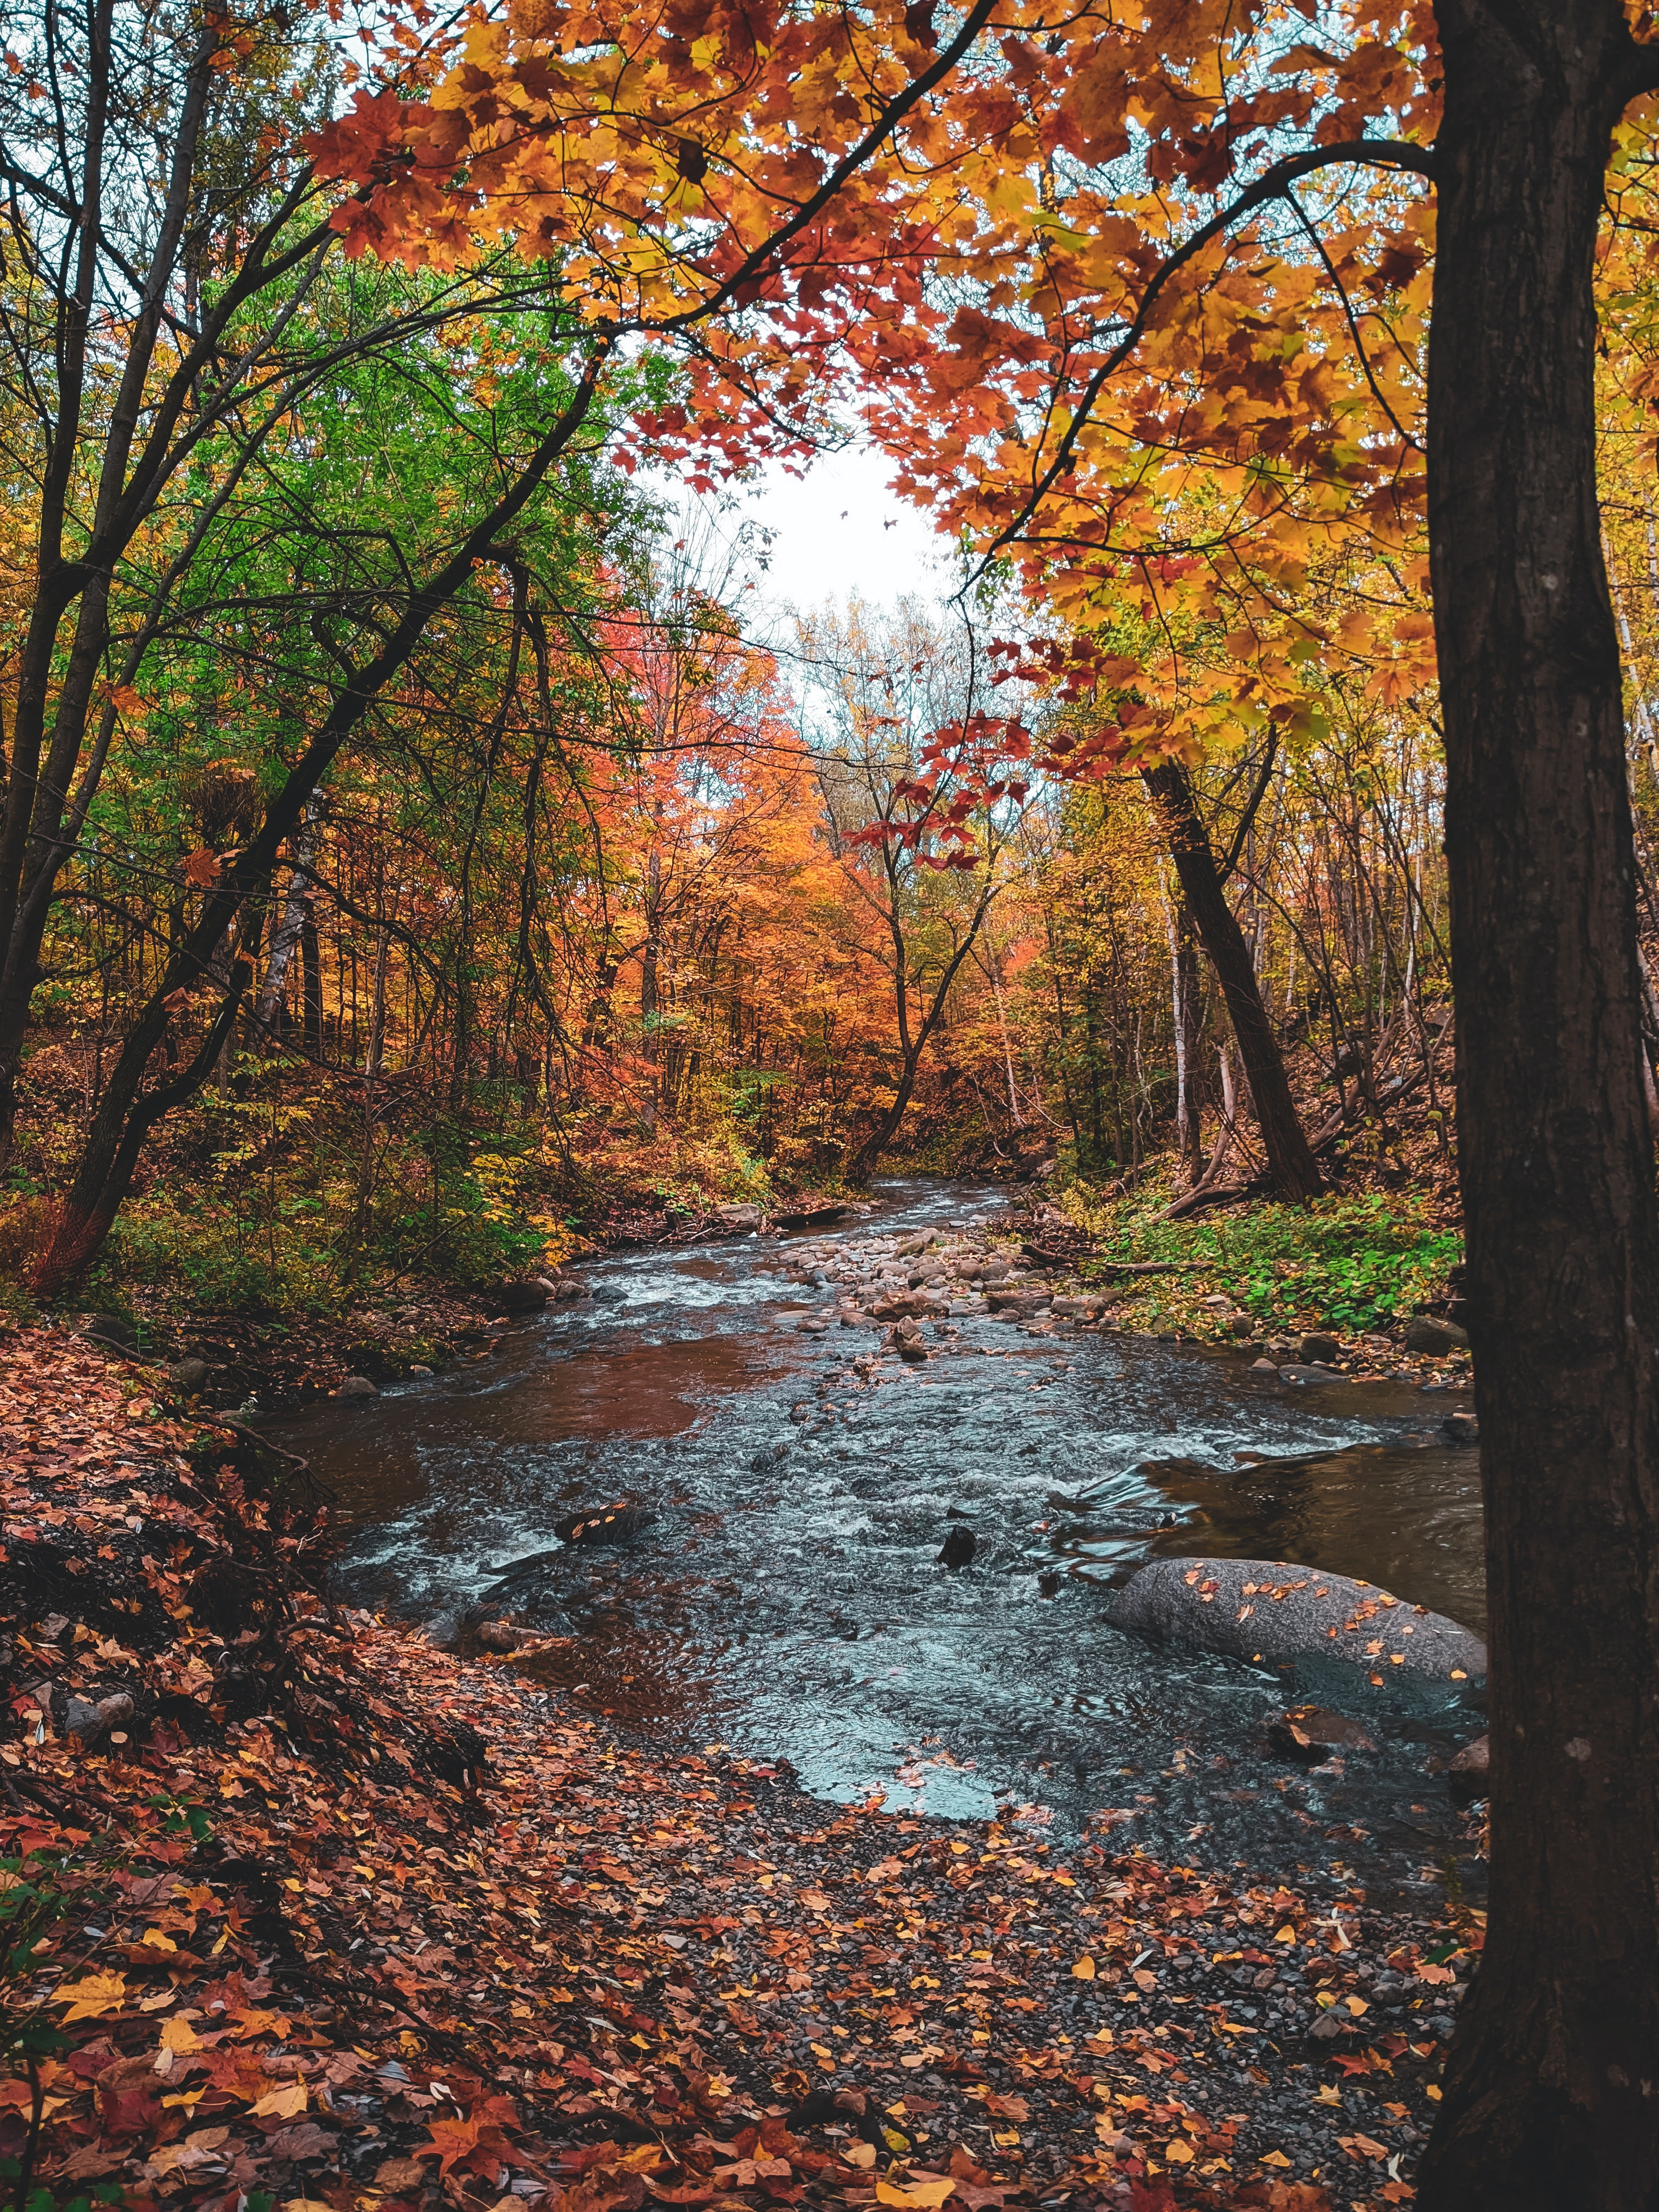 111720 download wallpaper Nature, Rivers, Autumn, Trees, Leaves screensavers and pictures for free